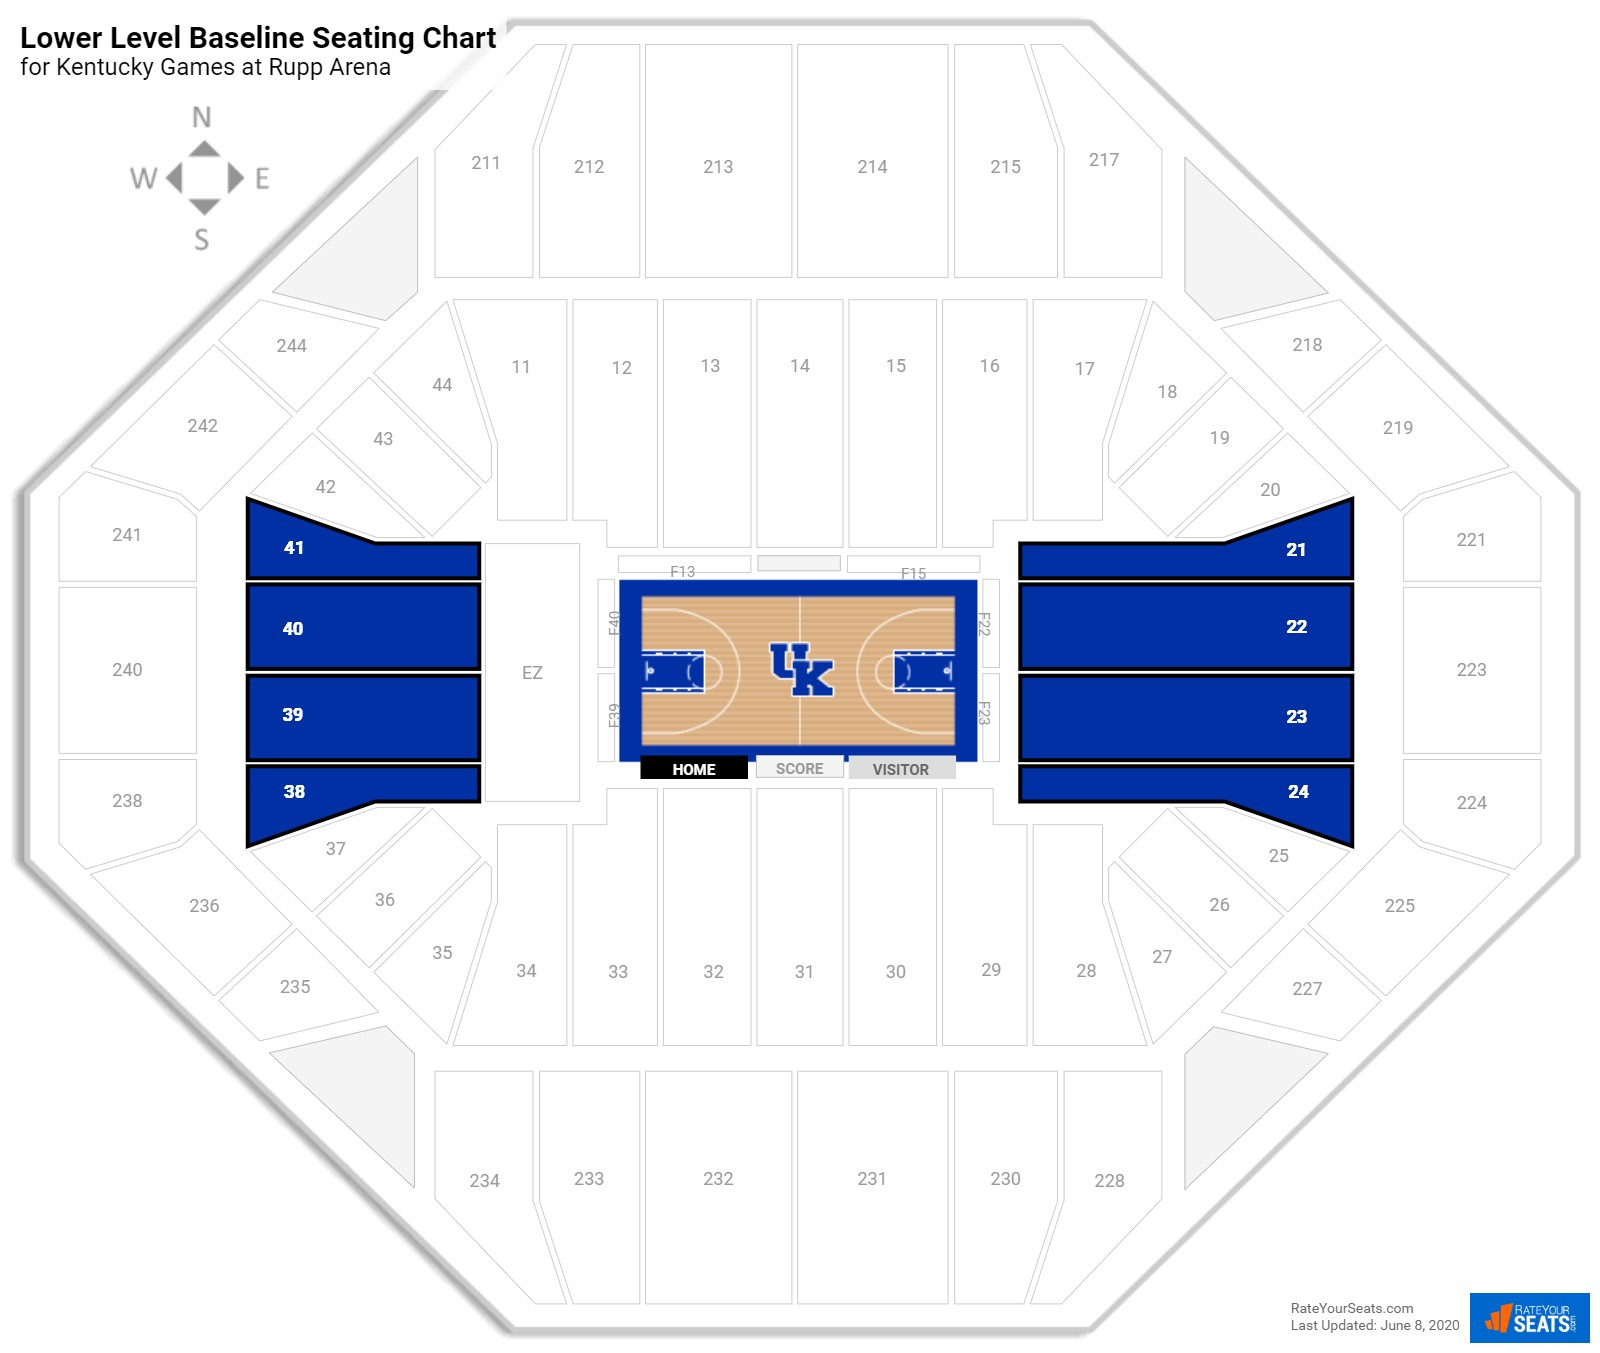 Rupp Arena Lower Level Baseline Seating Chart